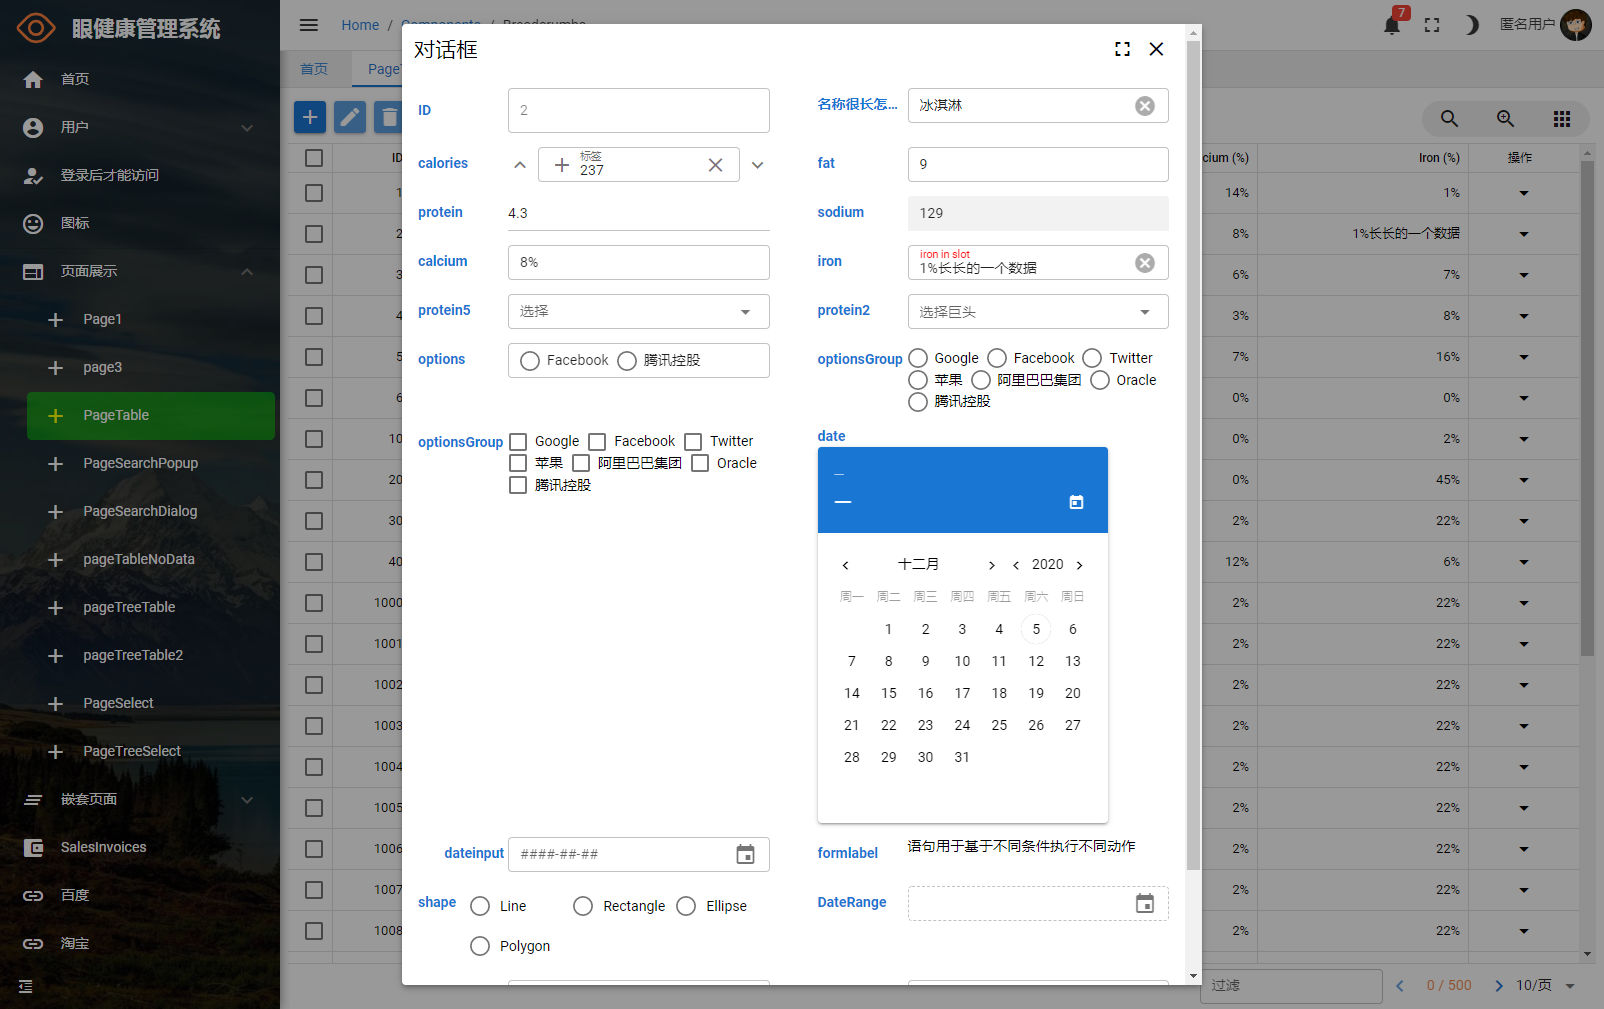 page_table_with_dialog